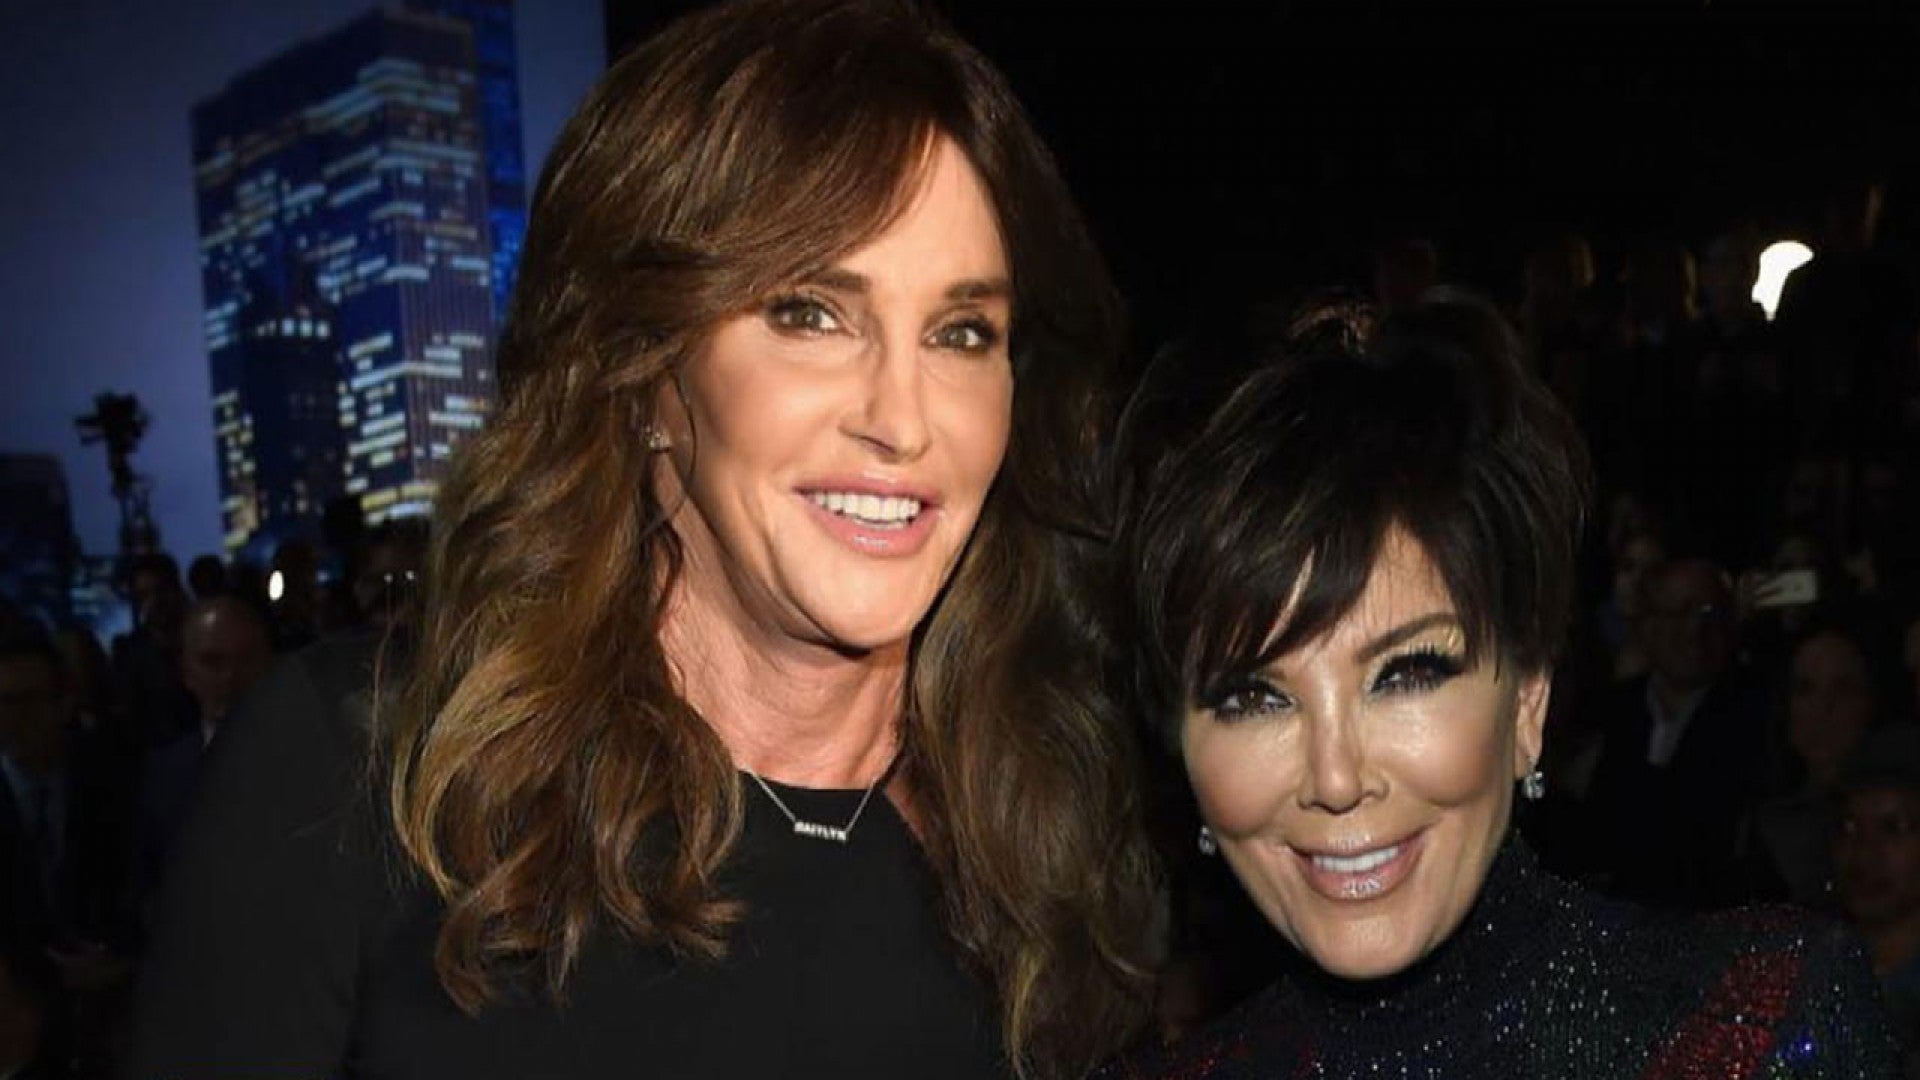 KUWTK: Kris Jenner Helps Caitlyn Jenner With Her Career Plans Despite Bad Blood In The Past – Here's Why!